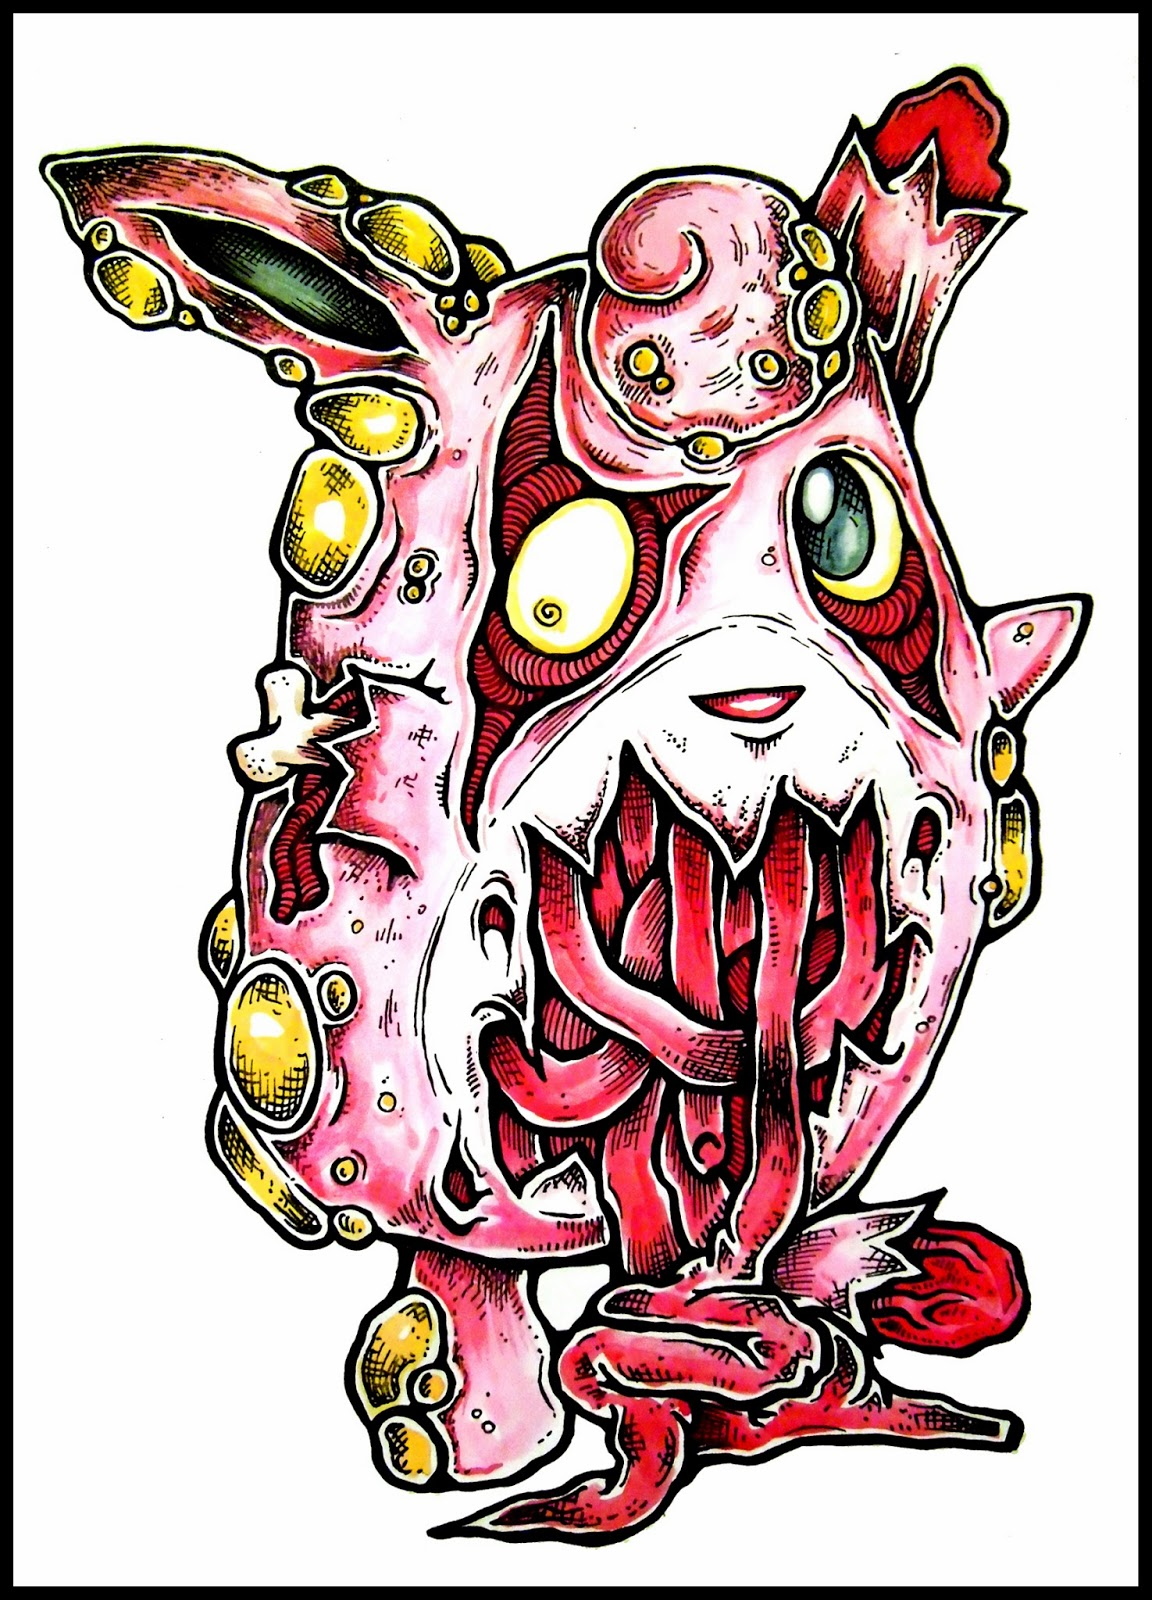 Hard Pokemon To Draw | www.pixshark.com - Images Galleries ...